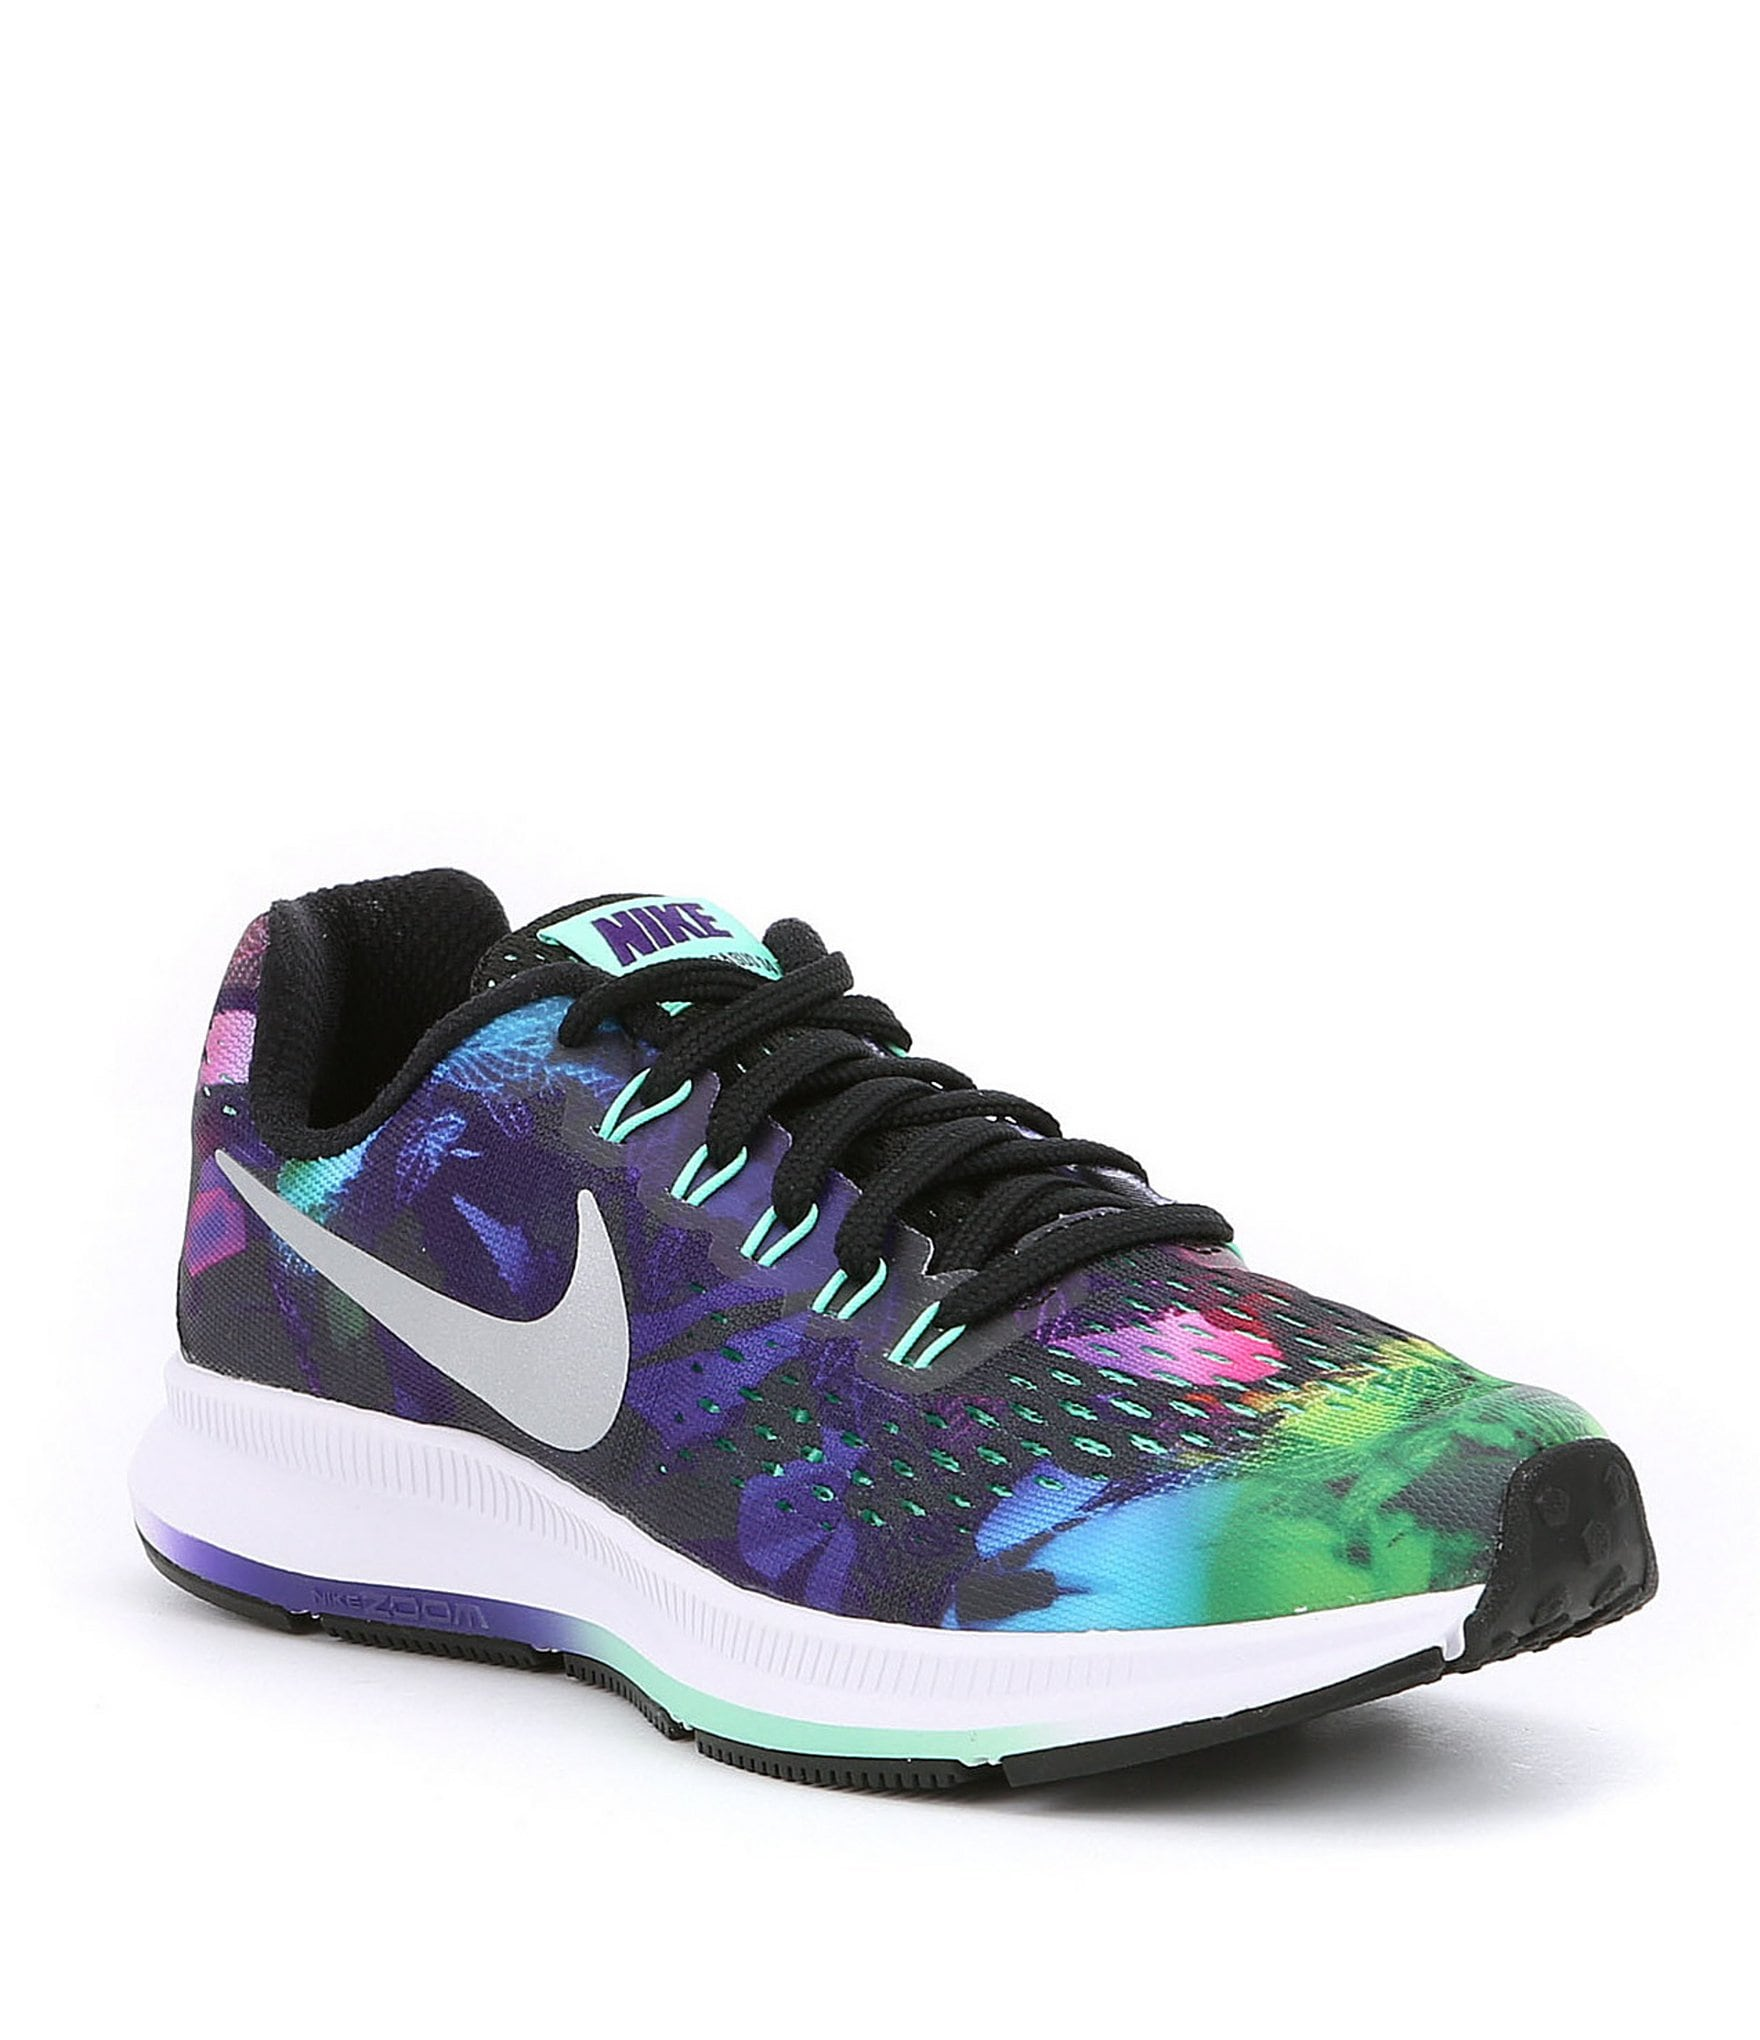 f27e503443cd6 ... Shoes Kids Shoes Youth Girls (12.5+) Athletic Dillards.c Nike  Performance AIR ZOOM PEGASUS 34 ...